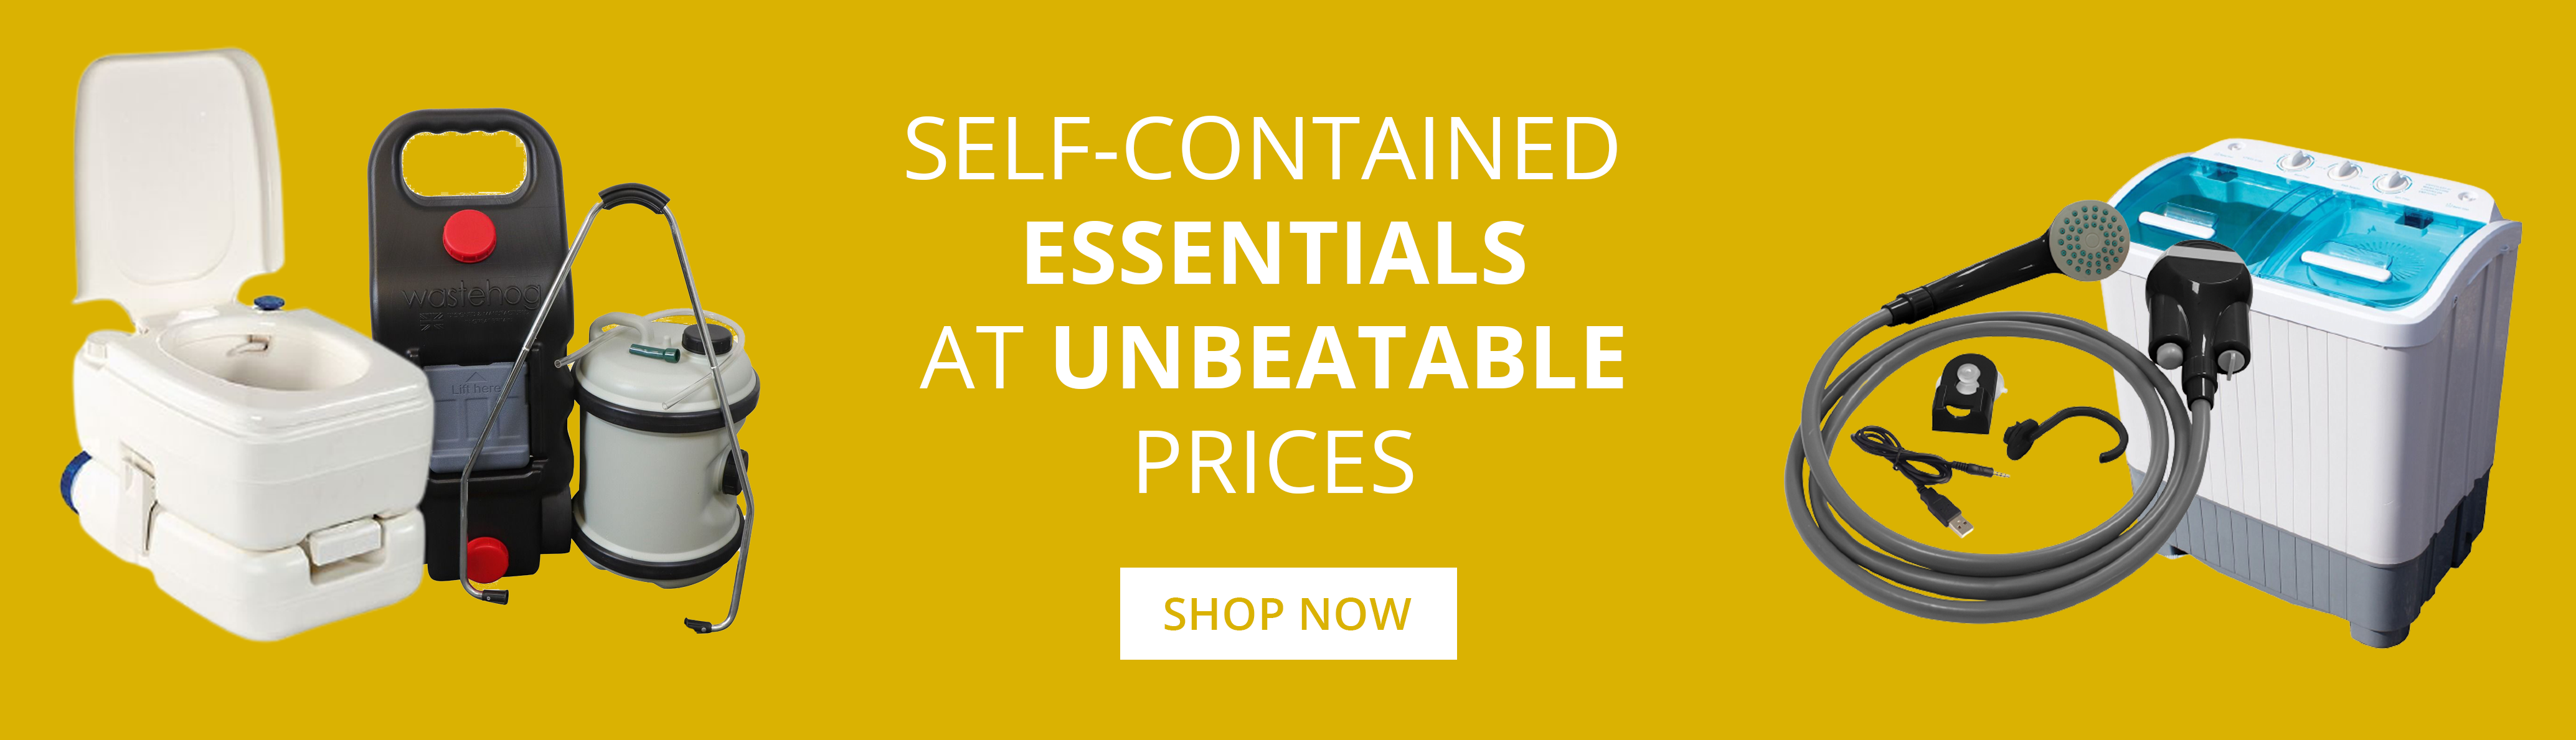 Self-Contained Essentials